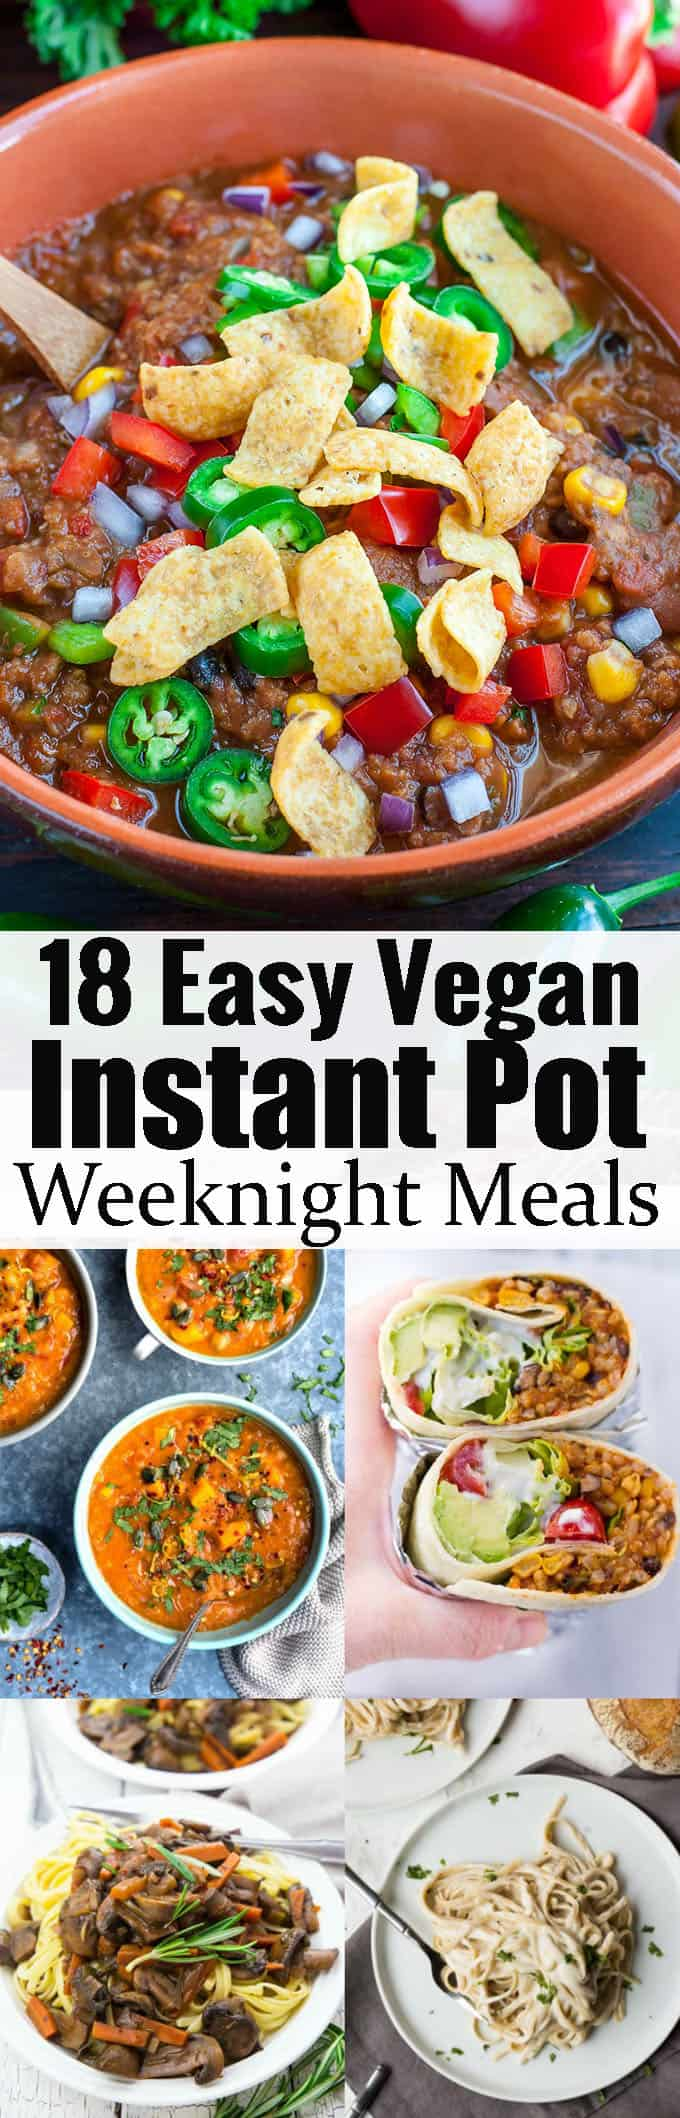 If you're looking for vegan instant pot recipes, this is the perfect post for you! It includes 18 easy vegan dinner recipes that are ready in no time. Perfect for weeknight meals! Find more vegan recipe ideas at veganheaven.org!